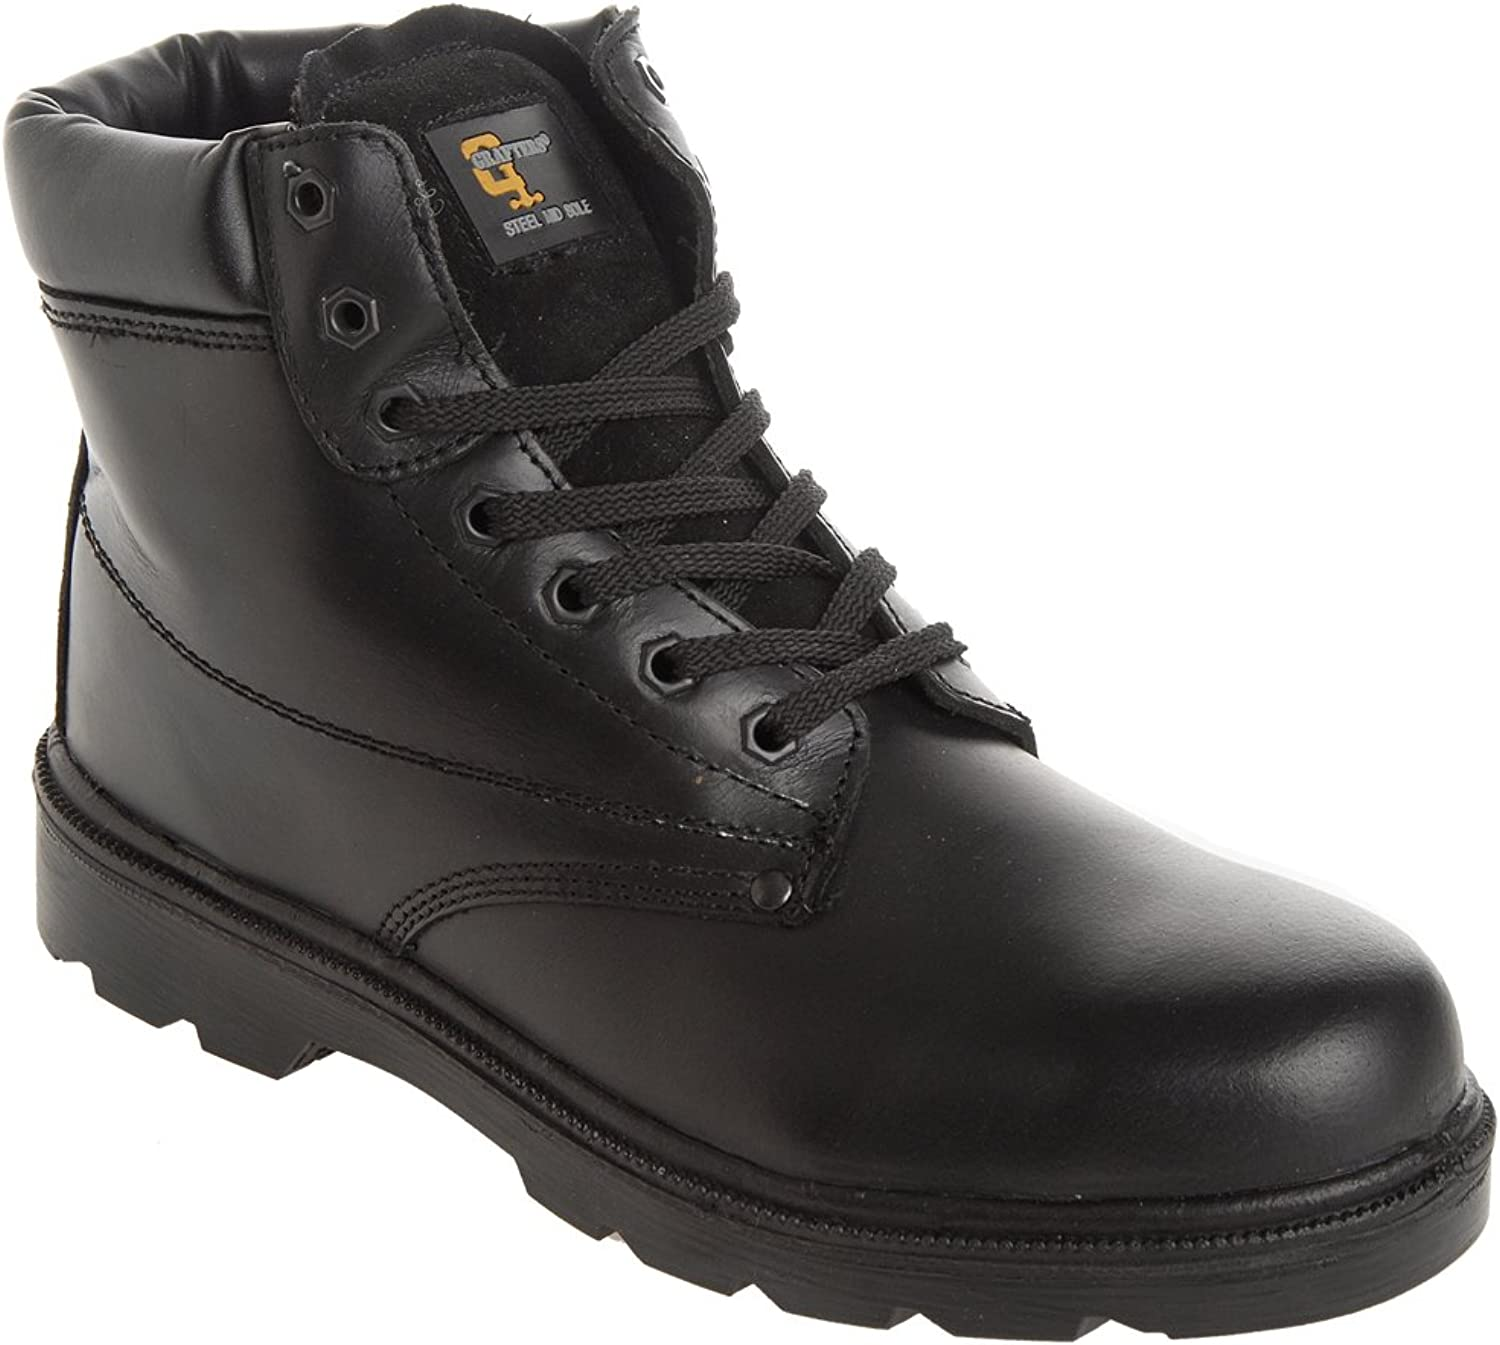 Grafters Unisex Steel Toe Midsole Padded Safety Boots Black